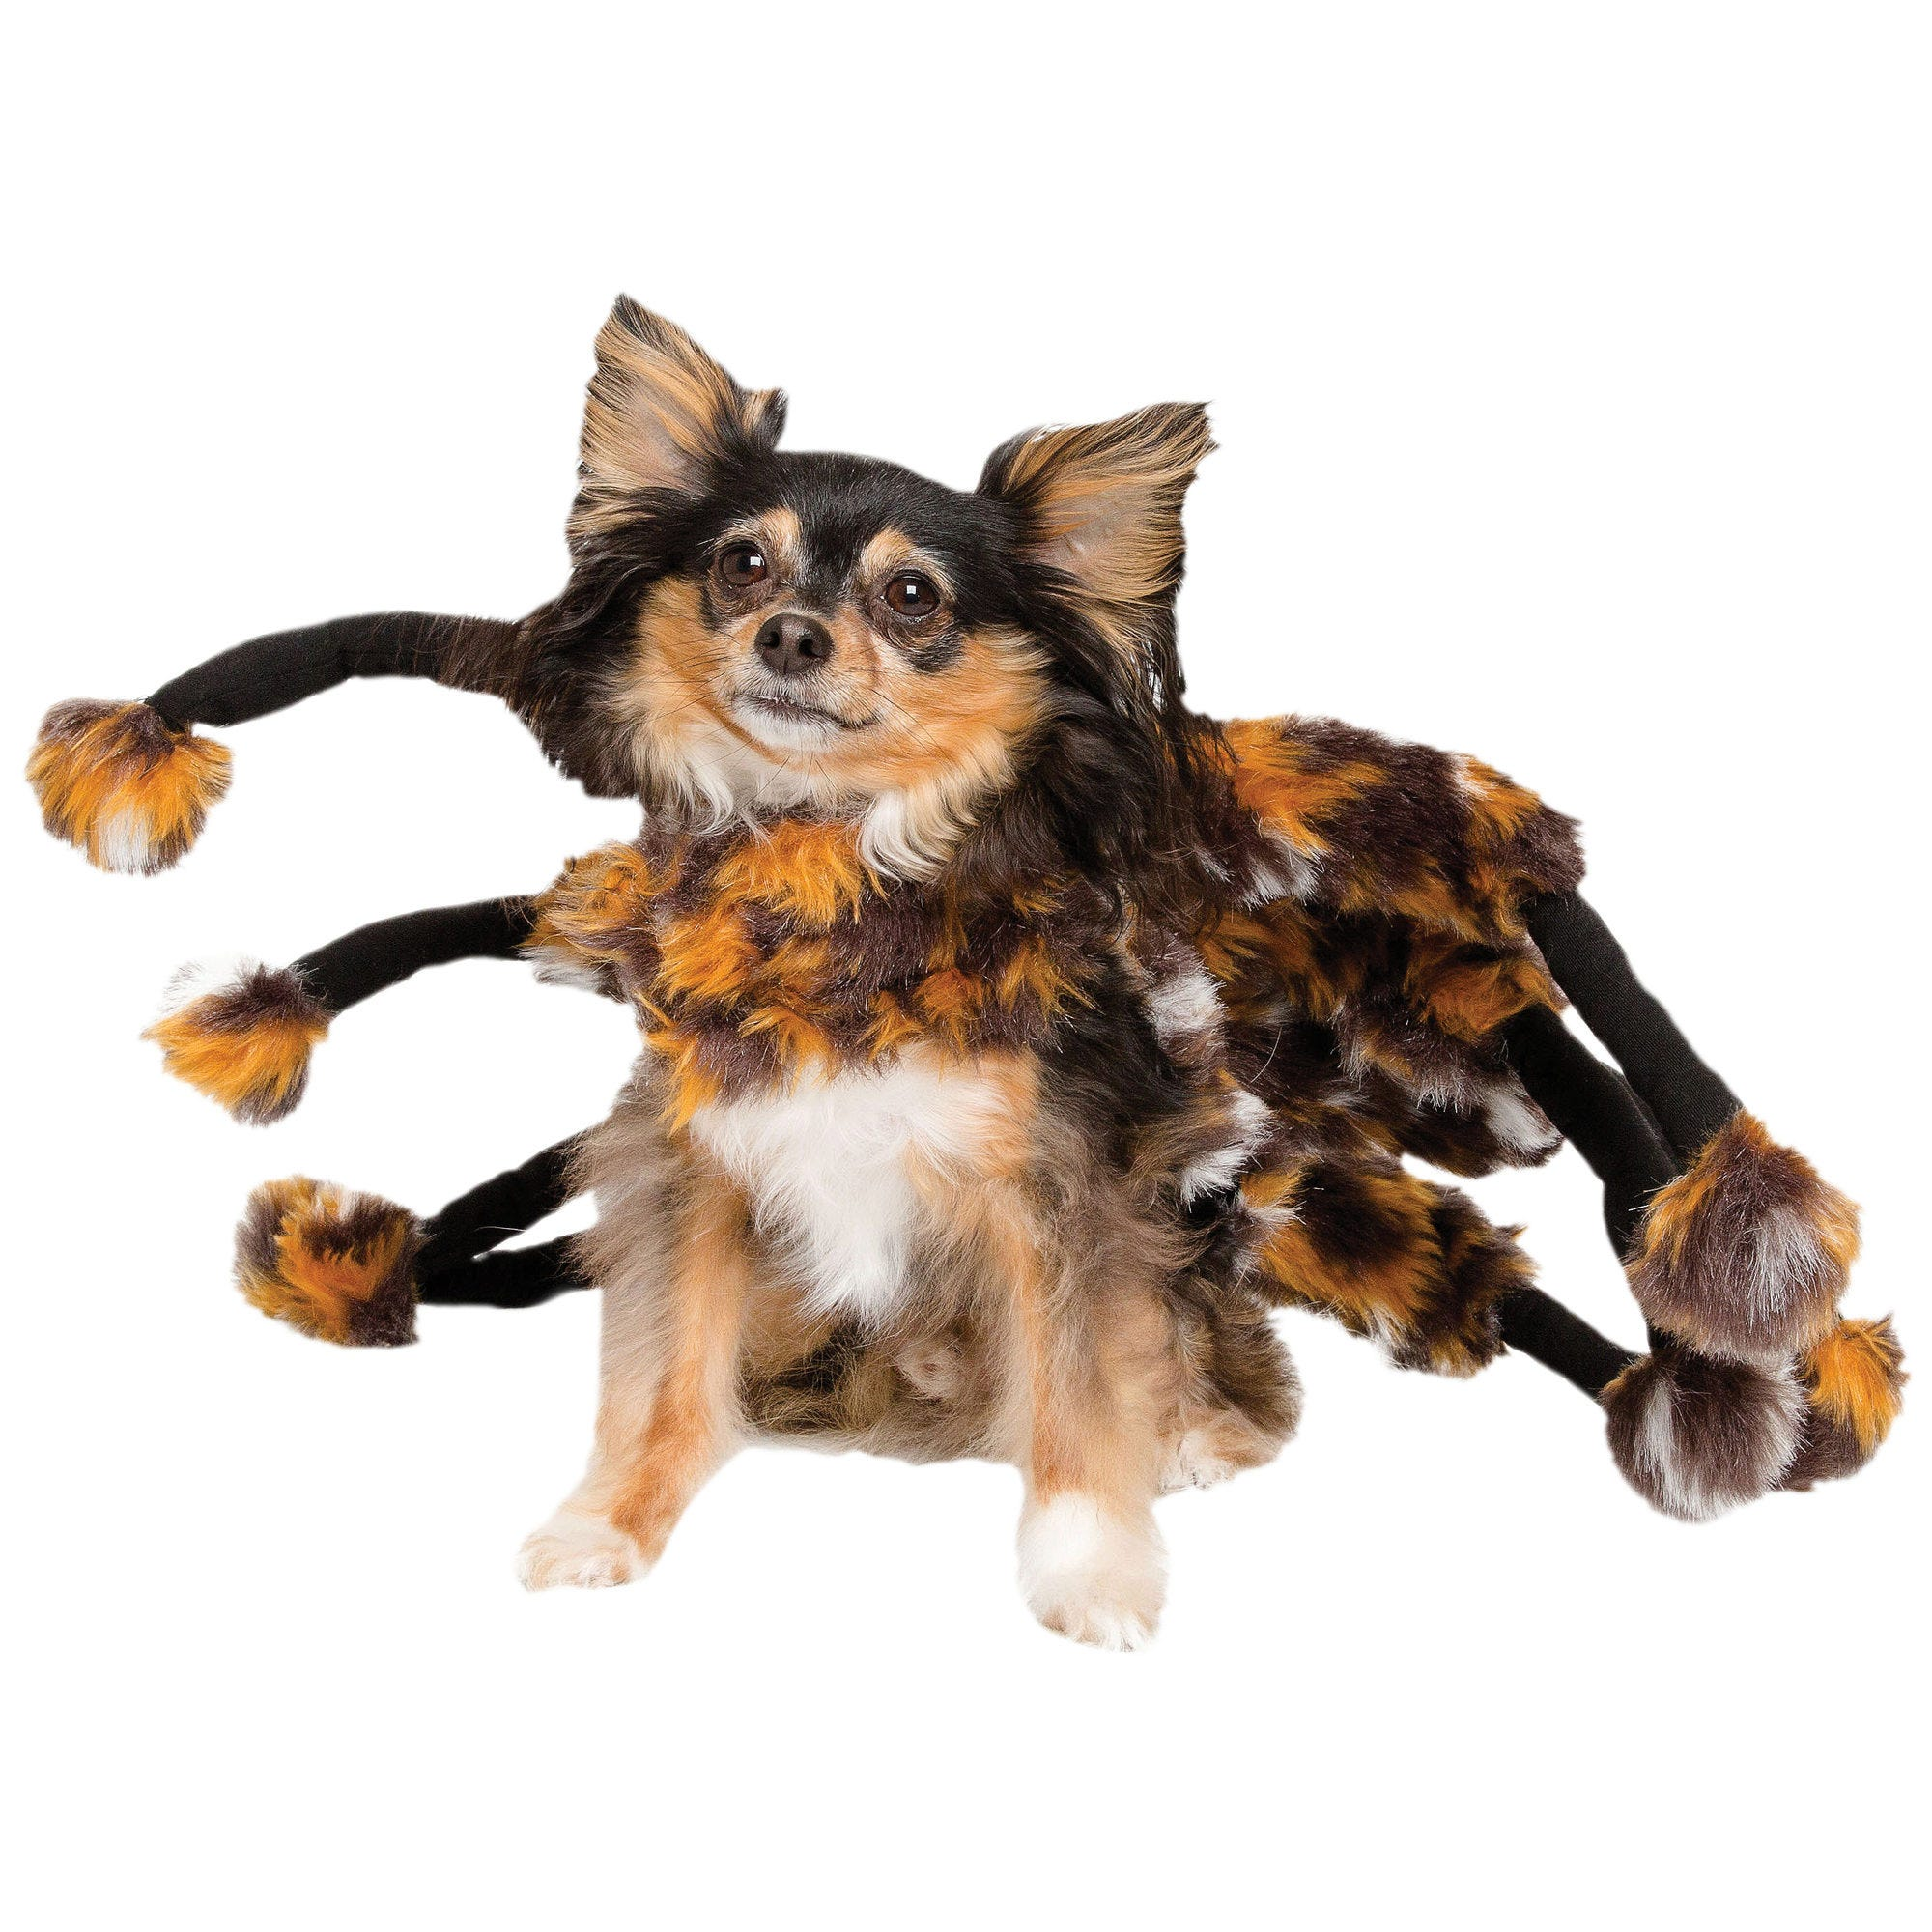 Tarantula Halloween Pet Costume - Qty 4